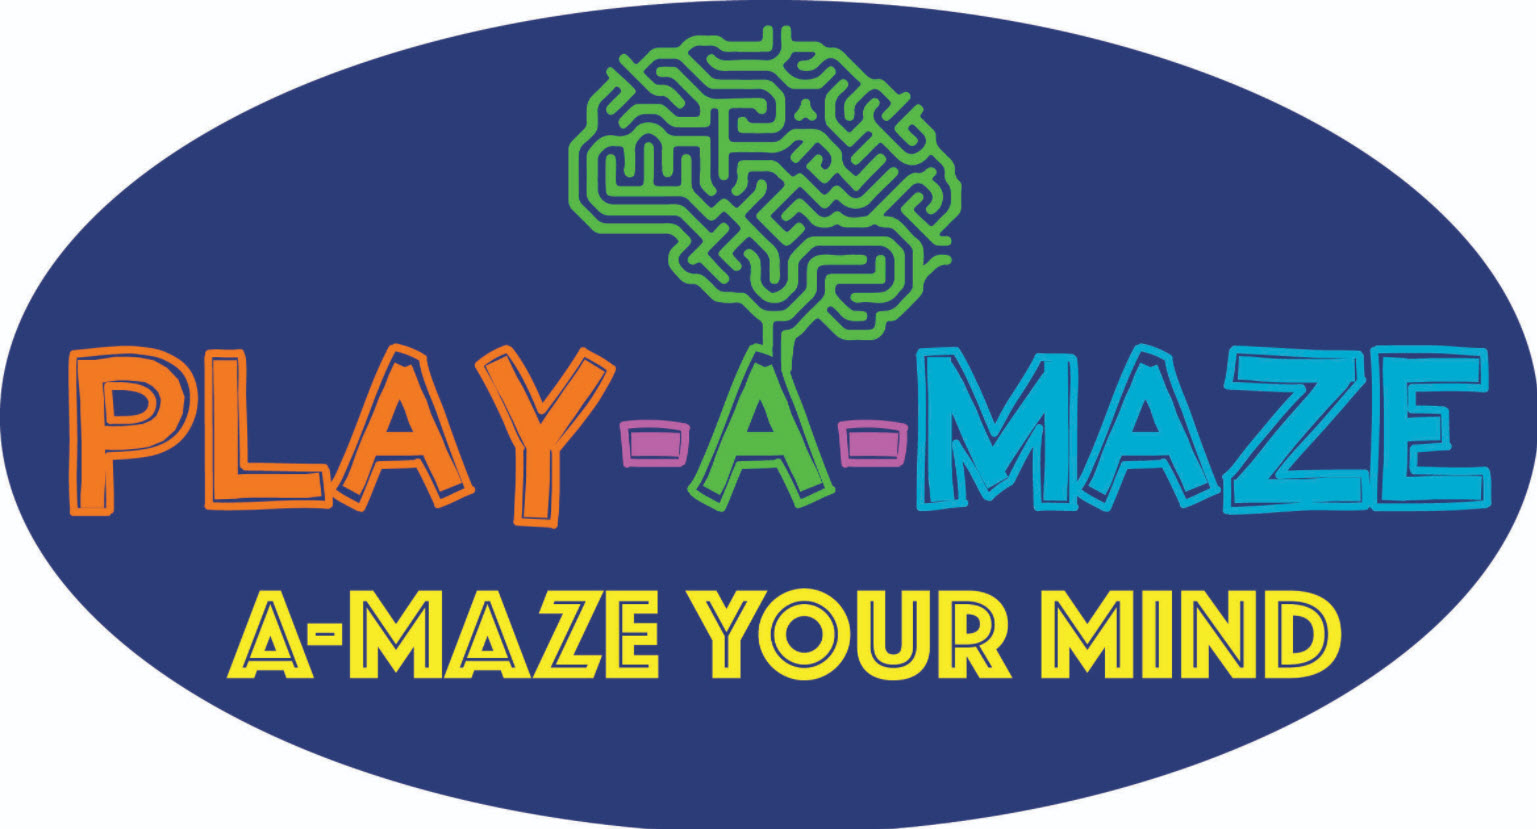 Play-A-Maze Launches The Gear8-tm Line of Puzzle Maze Toys - Fun Way To Relax and Master STEM Basics